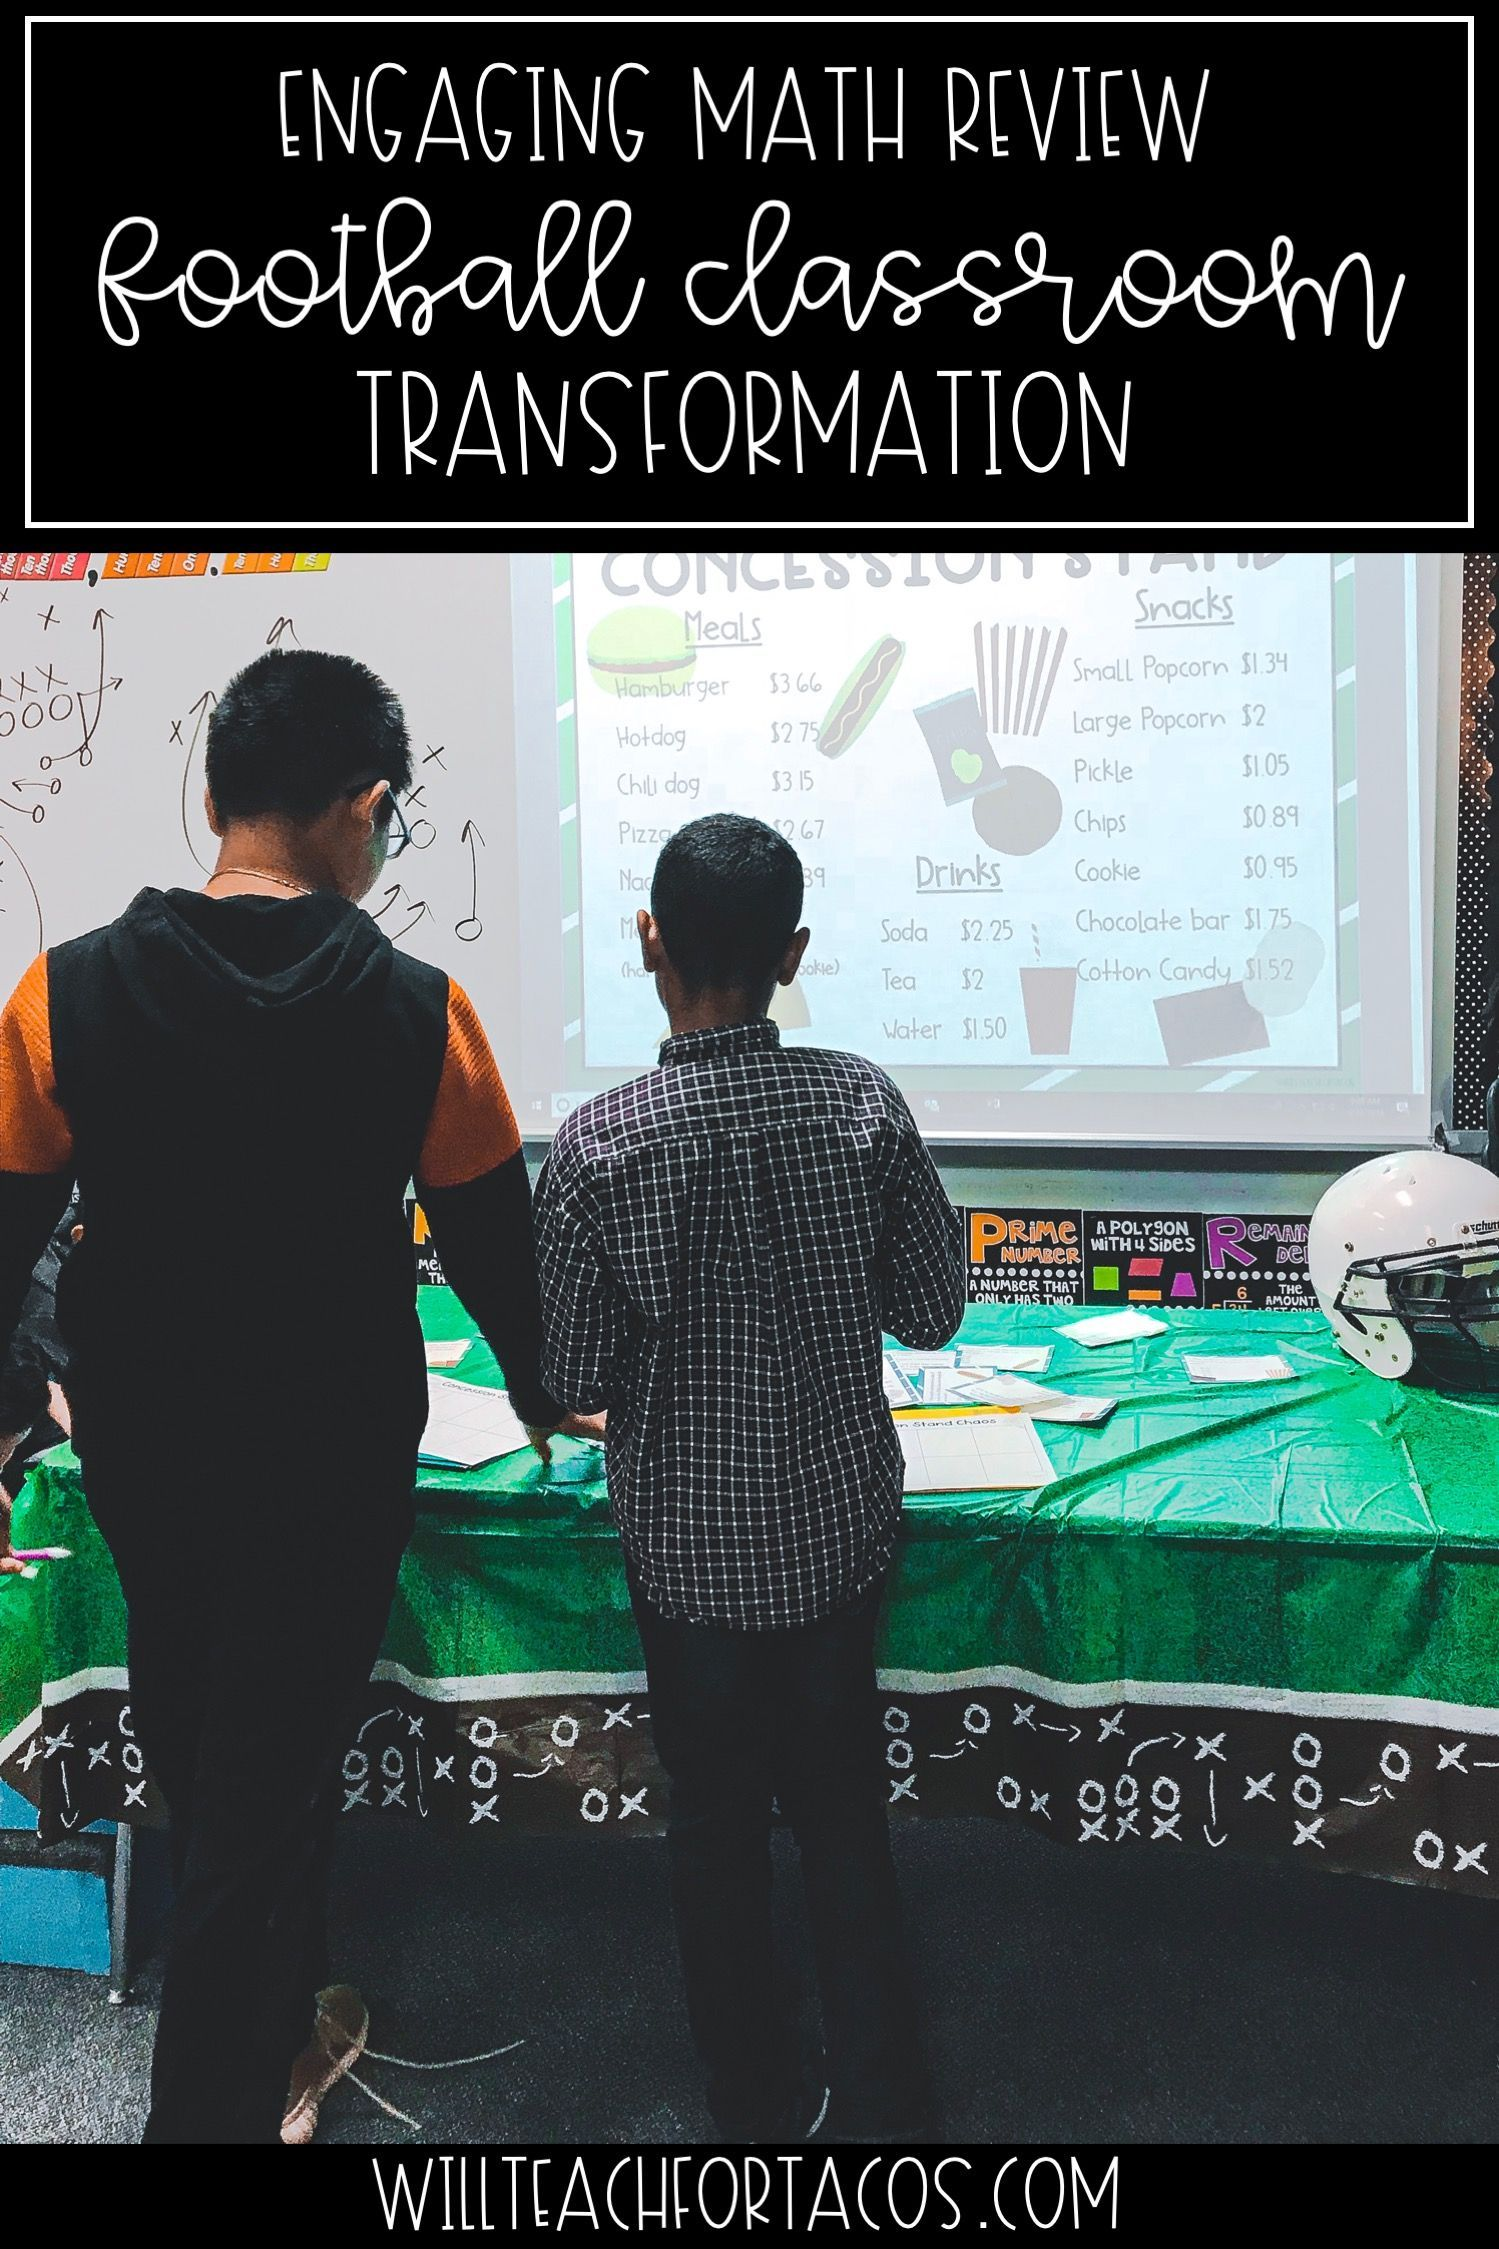 I Don T Know About You But My Students Love Sports And All Things Football Themed To Feed Off Of That Lo Classroom Transformation Math Prep Staar Review Math [ 2249 x 1499 Pixel ]